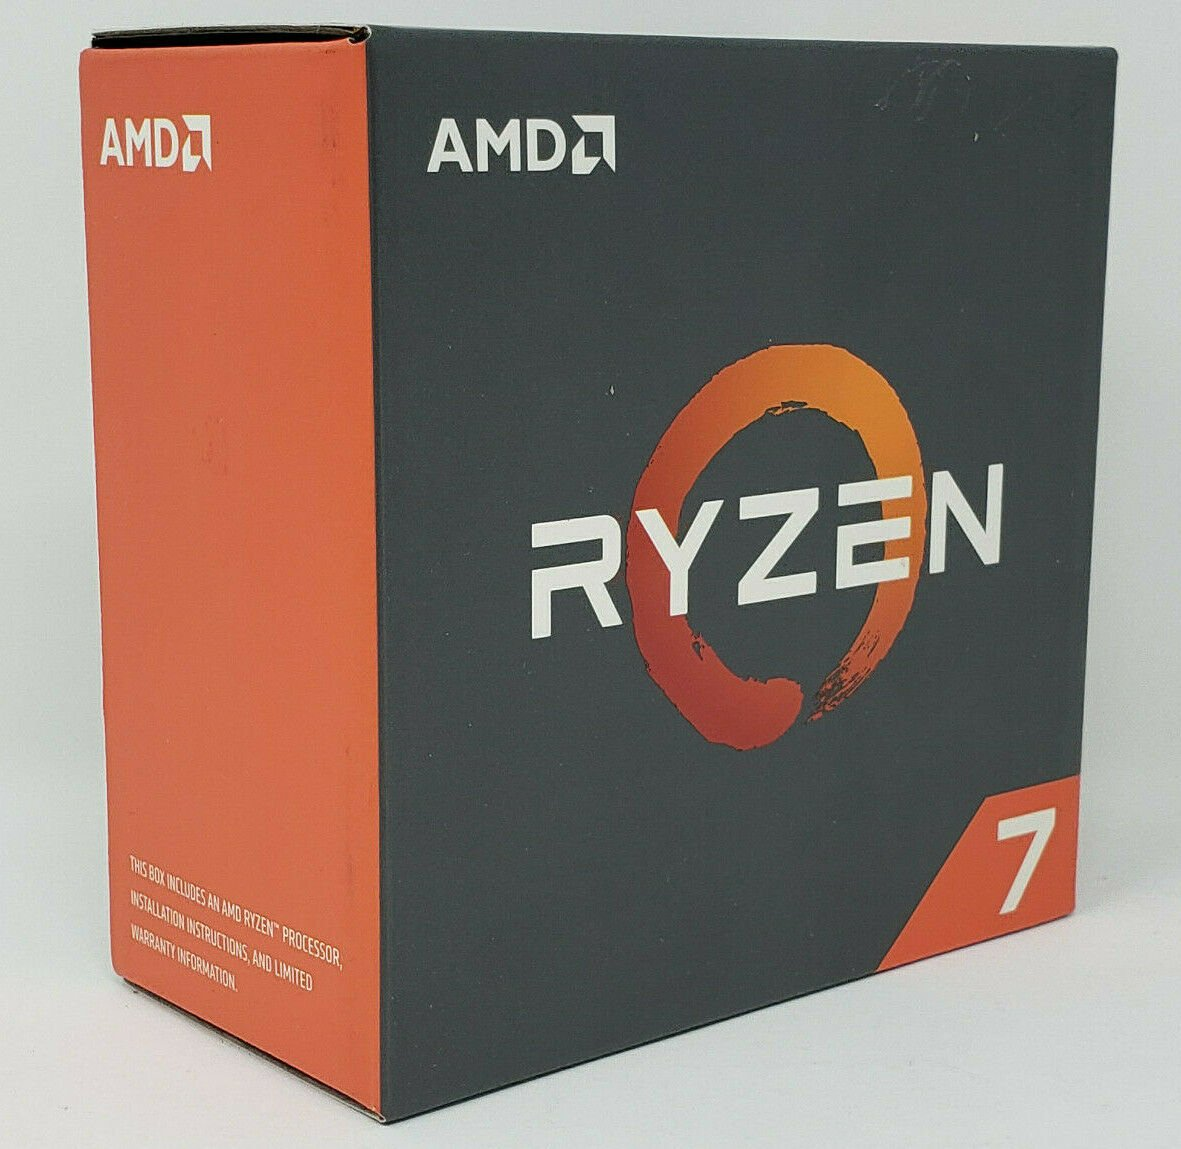 AMD Ryzen 7 1700 Summit Ridge